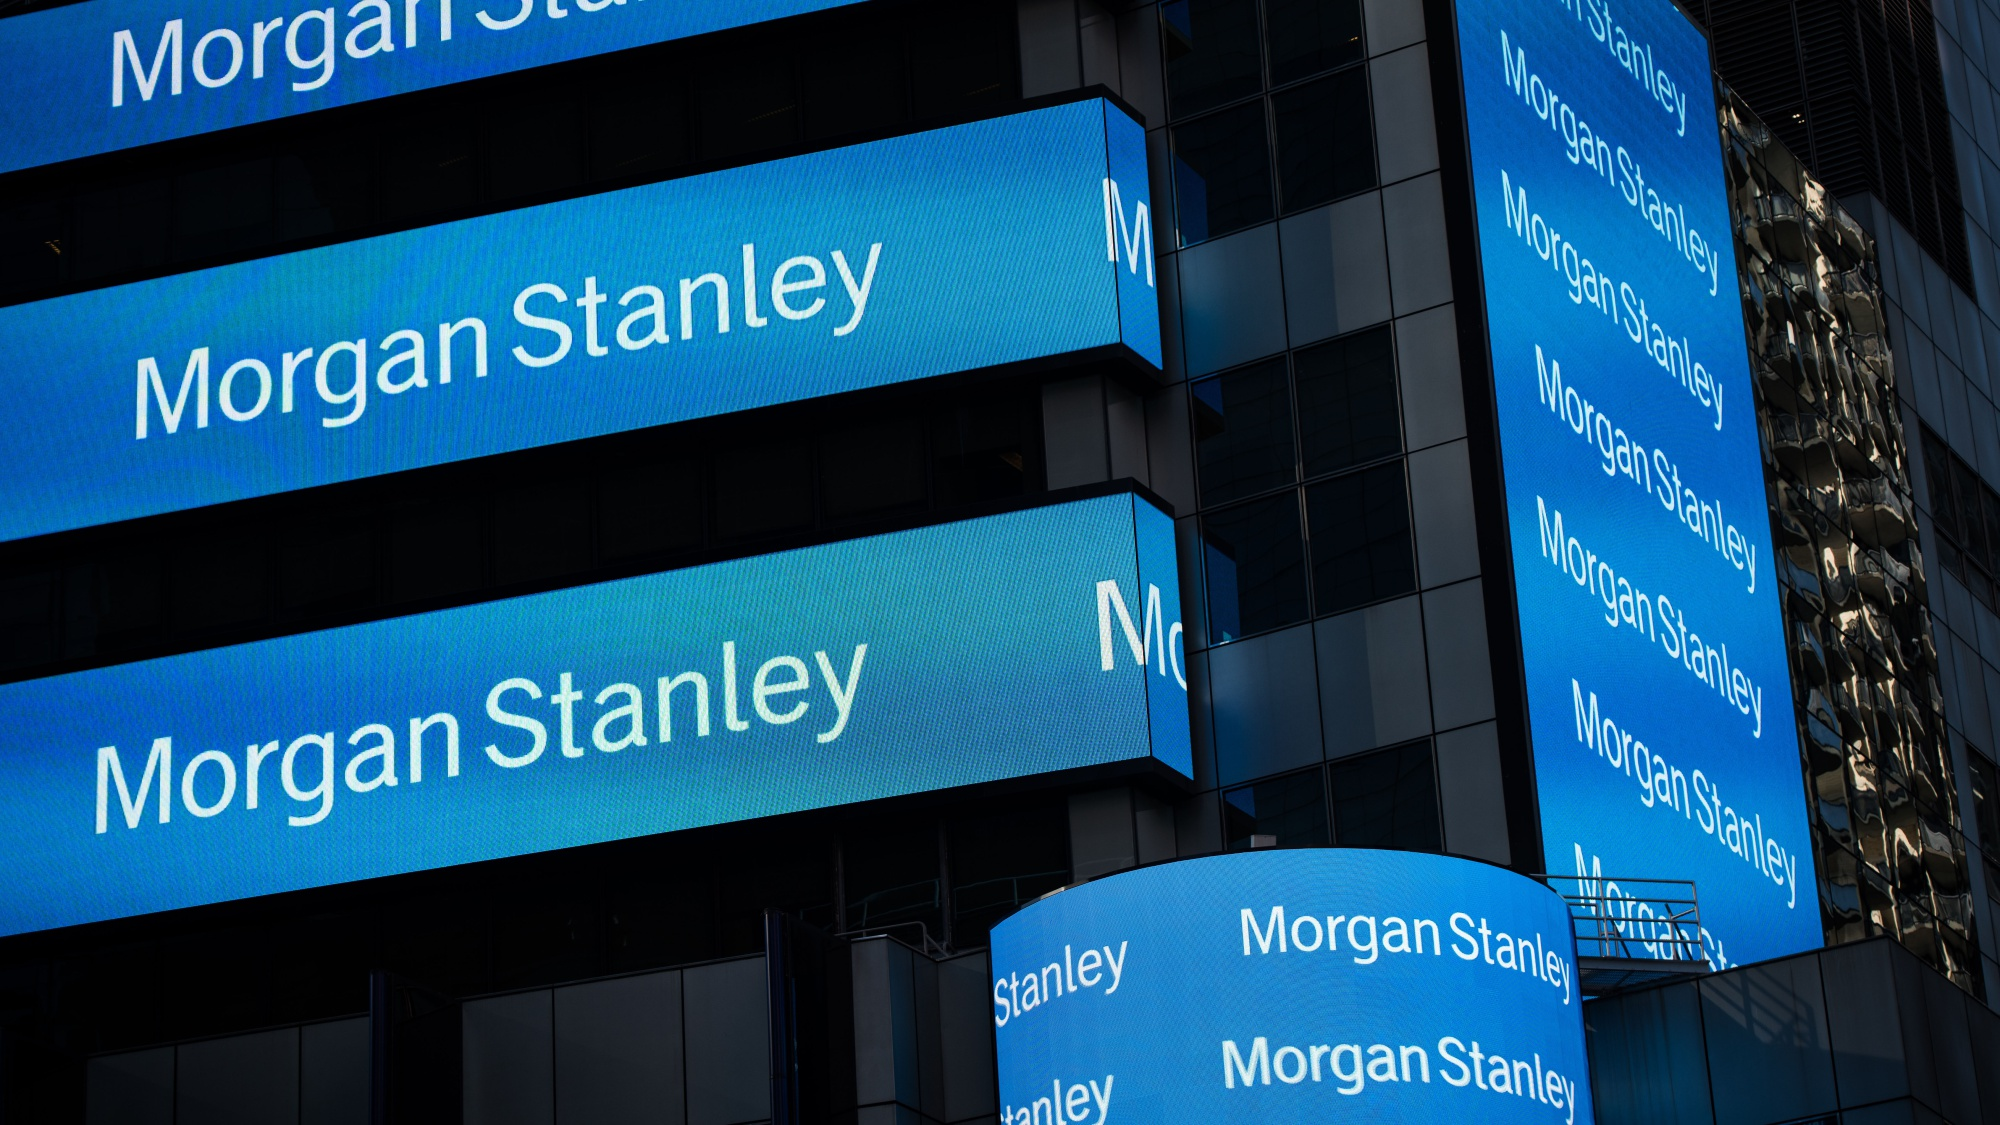 Morgan Stanley's Brokers, Traders Counter Dealmaking Decline